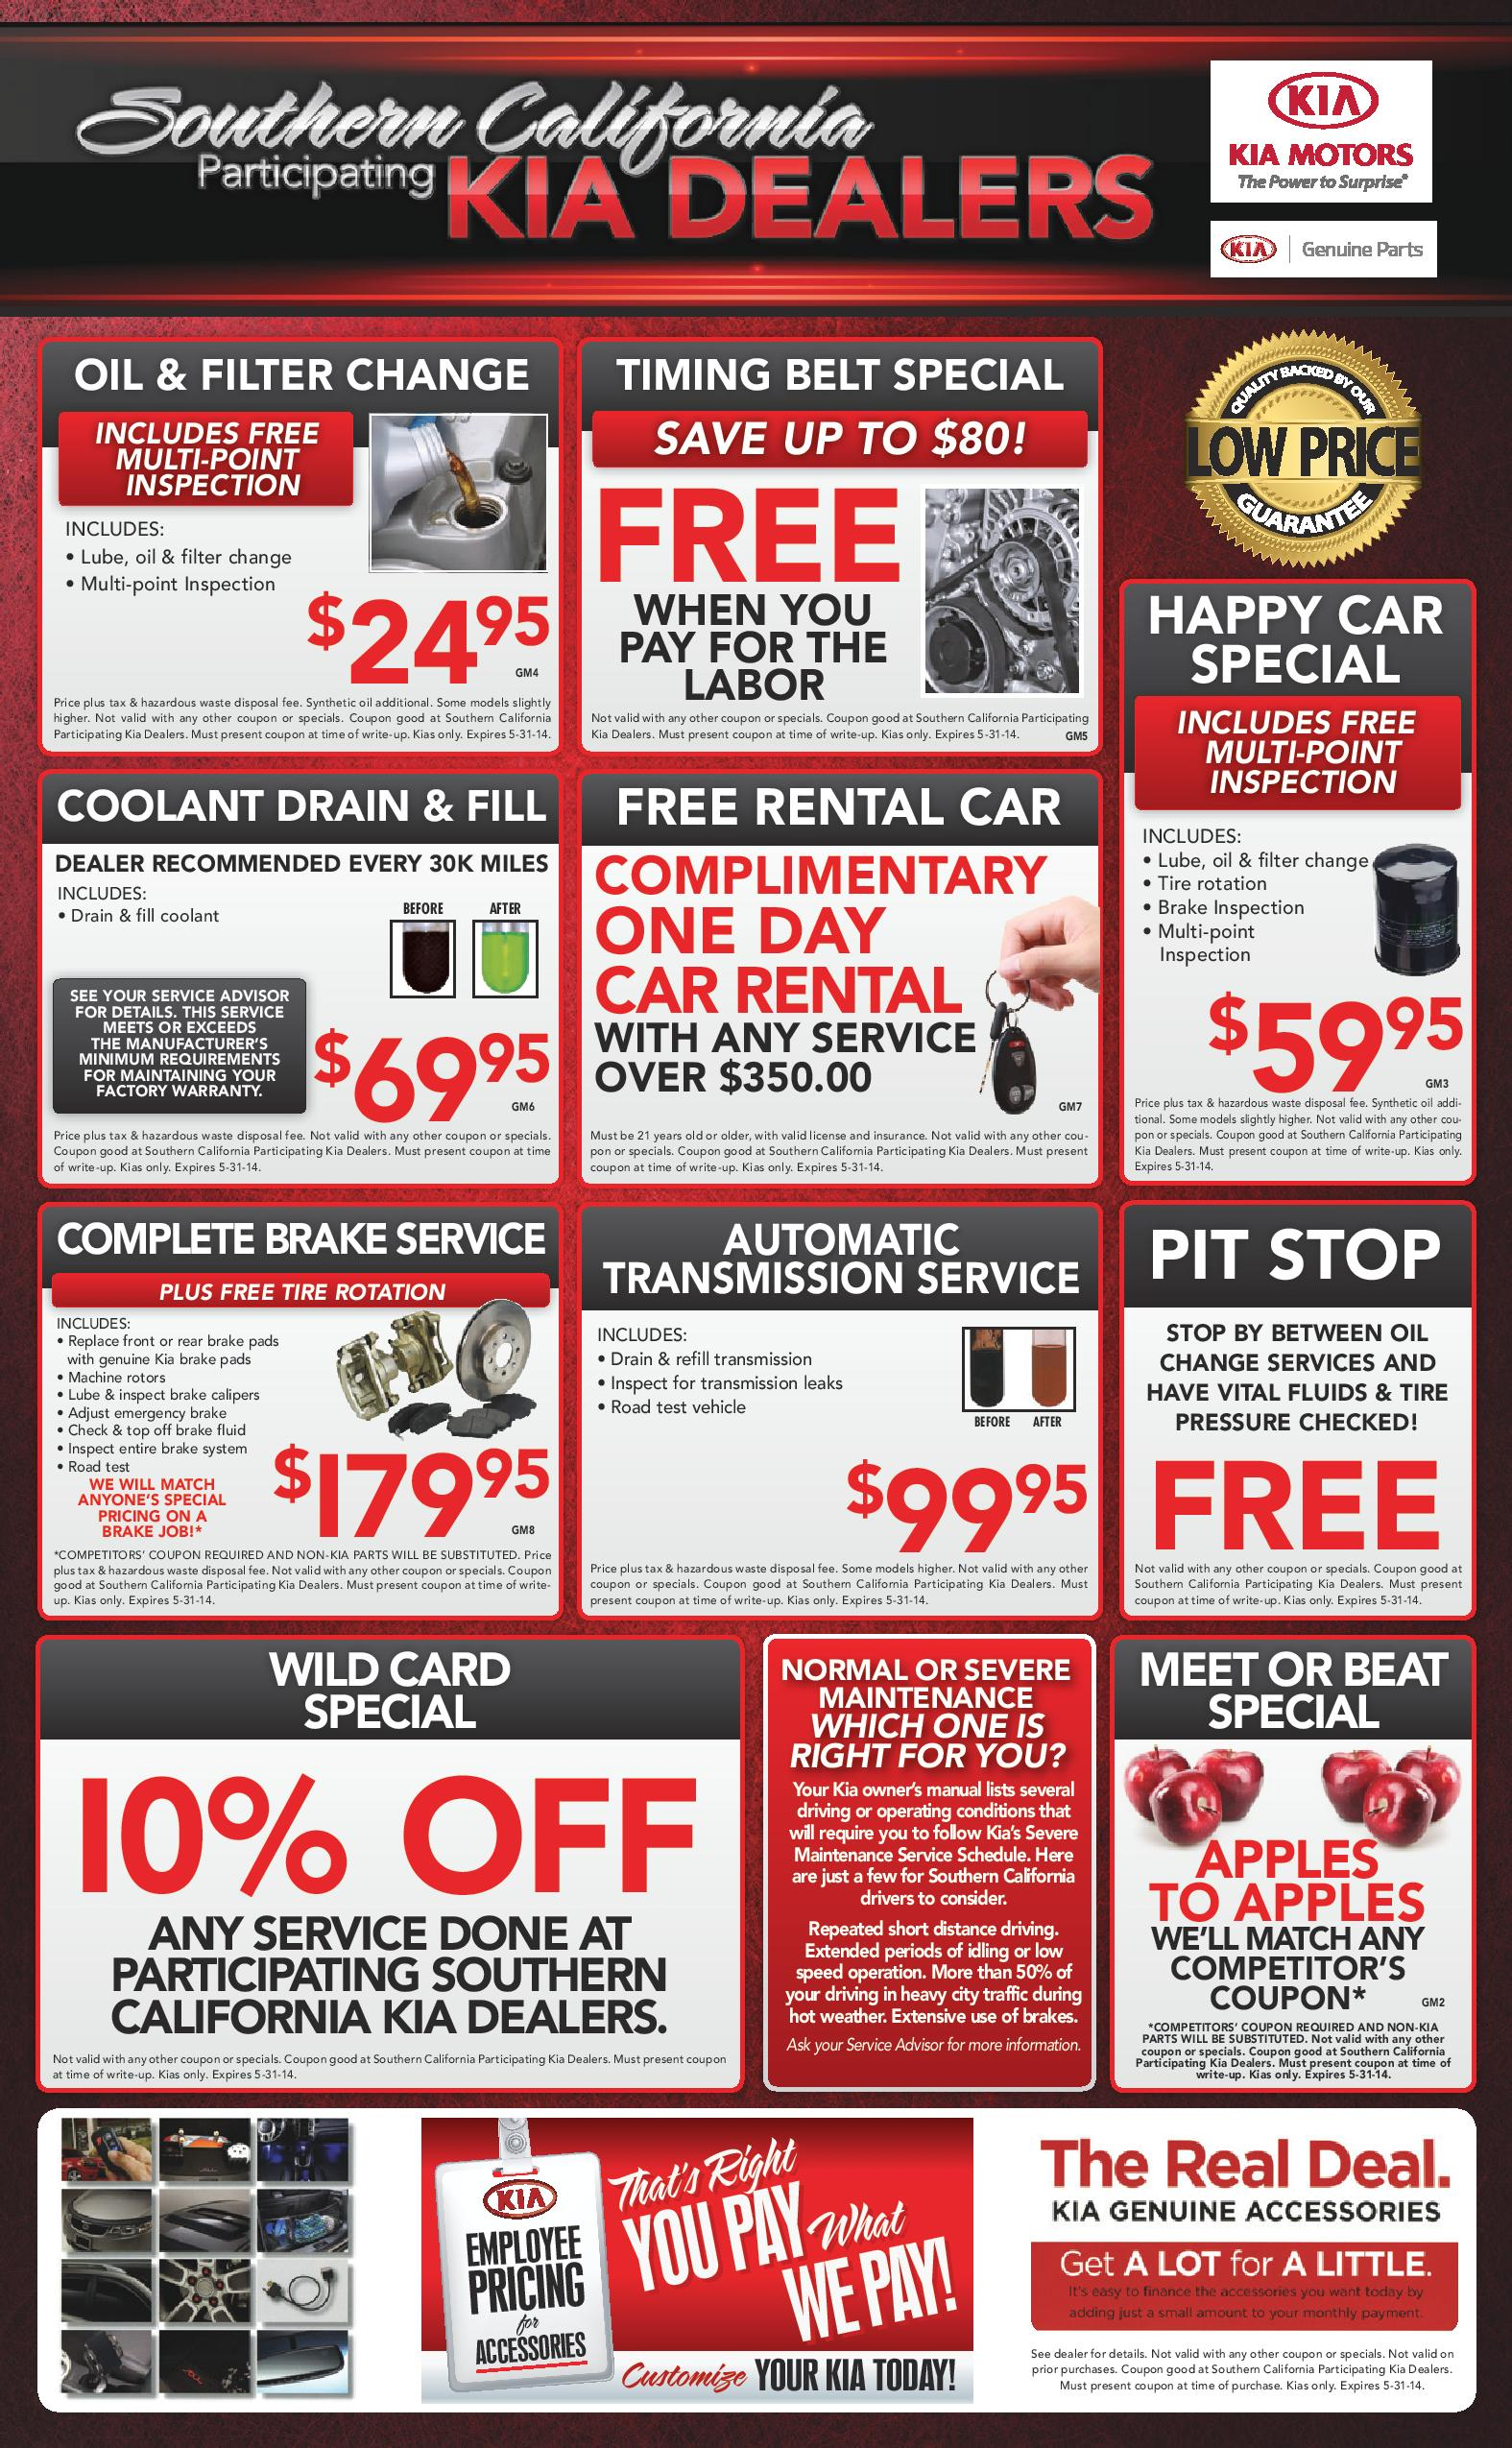 kia dealership oil change coupons thanksgiving deals